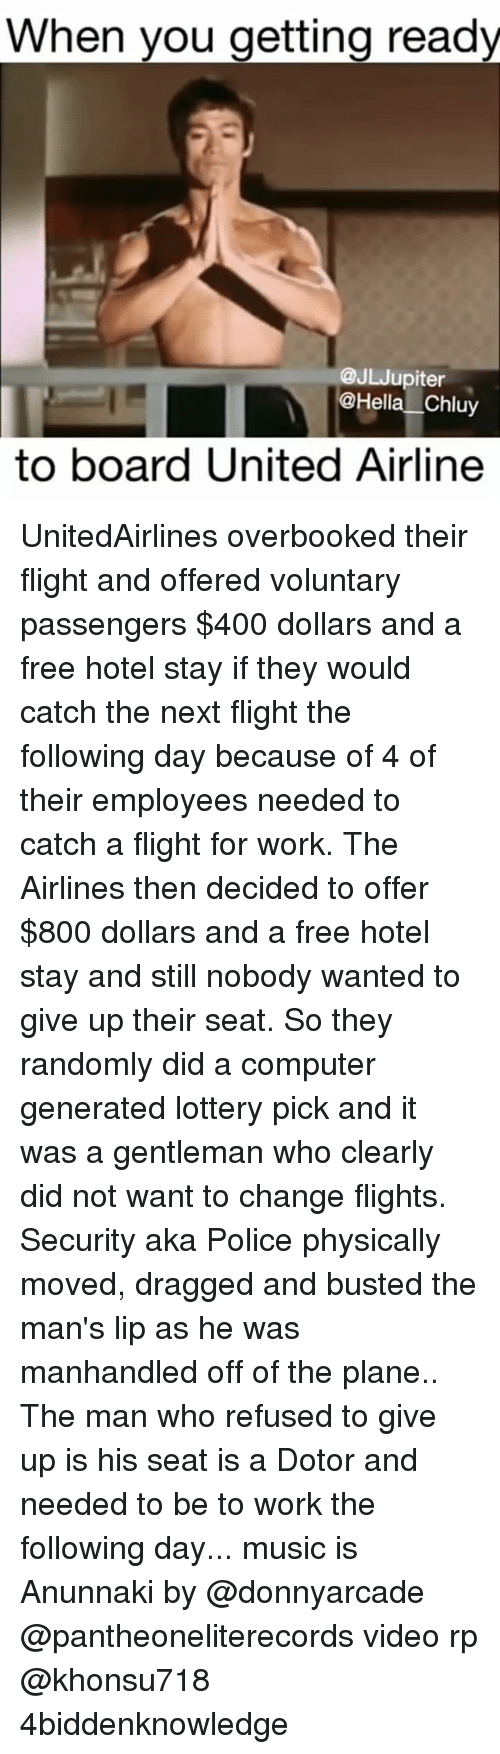 Lottery, Memes, and Music: When you getting ready  @JLJupiter  @Hella Chluy  to board United Airline UnitedAirlines overbooked their flight and offered voluntary passengers $400 dollars and a free hotel stay if they would catch the next flight the following day because of 4 of their employees needed to catch a flight for work. The Airlines then decided to offer $800 dollars and a free hotel stay and still nobody wanted to give up their seat. So they randomly did a computer generated lottery pick and it was a gentleman who clearly did not want to change flights. Security aka Police physically moved, dragged and busted the man's lip as he was manhandled off of the plane.. The man who refused to give up is his seat is a Dotor and needed to be to work the following day... music is Anunnaki by @donnyarcade @pantheoneliterecords video rp @khonsu718 4biddenknowledge